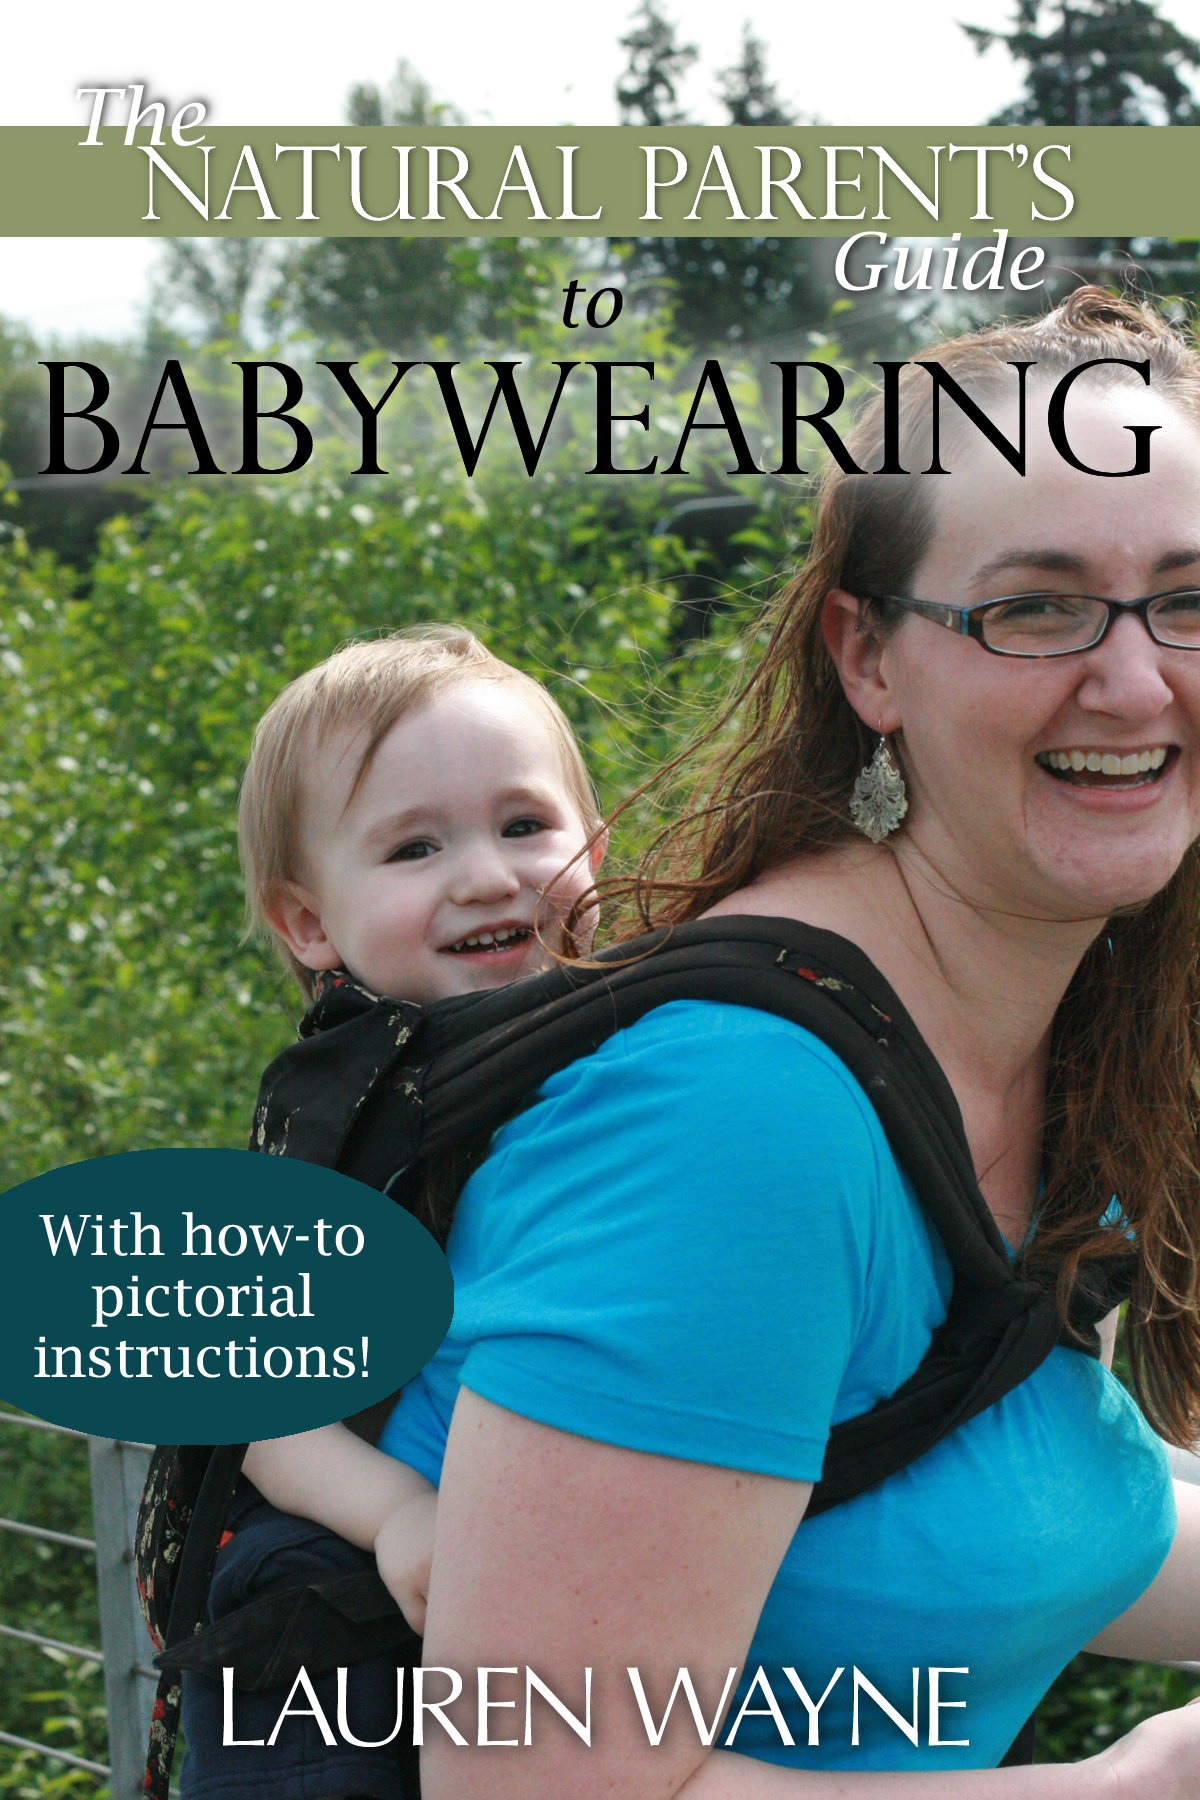 The Natural Parent's Guide to Babywearing